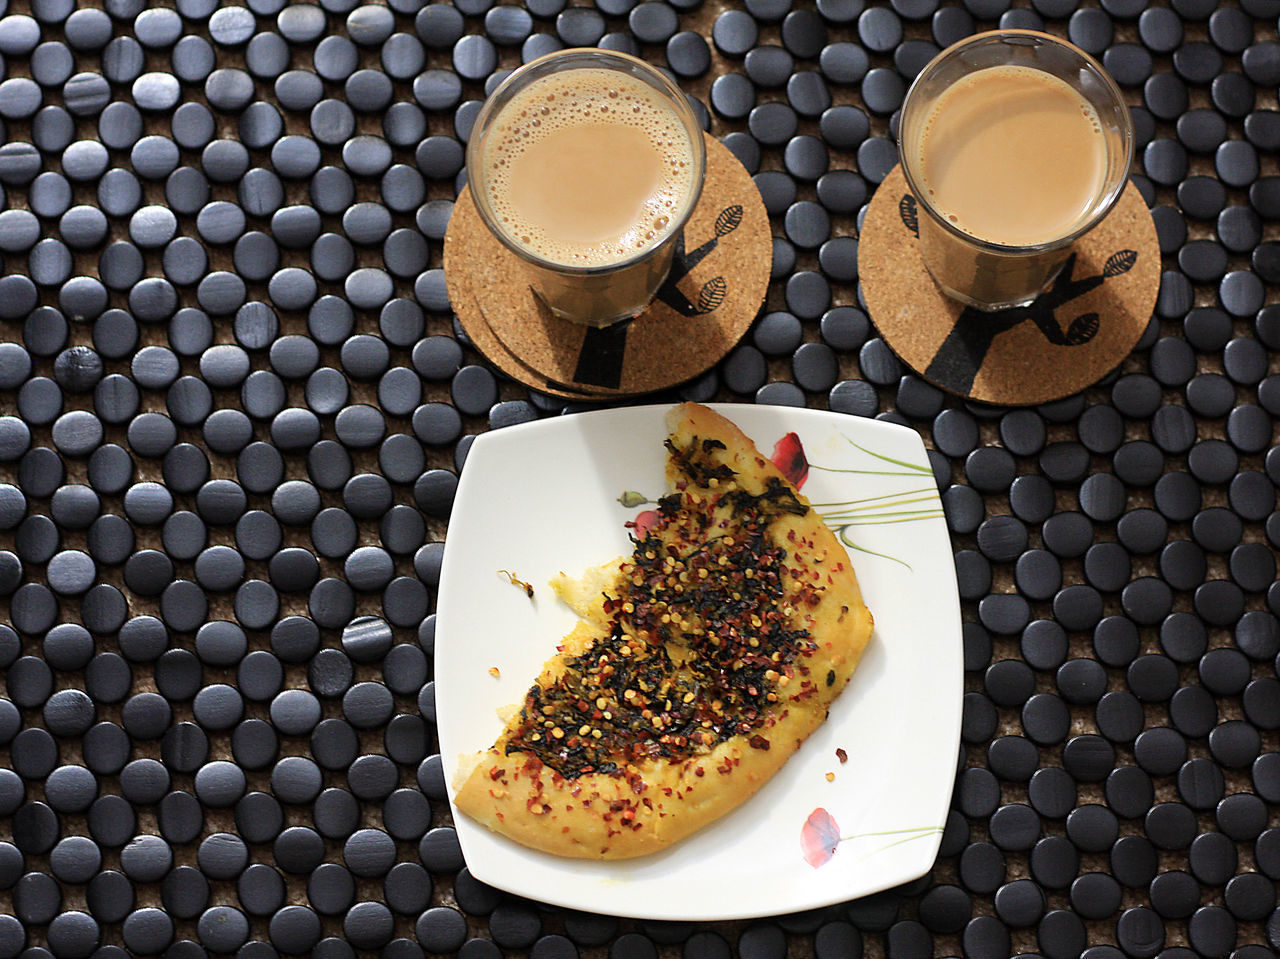 High Angle View Of Tea And Pizza On Patterned Table